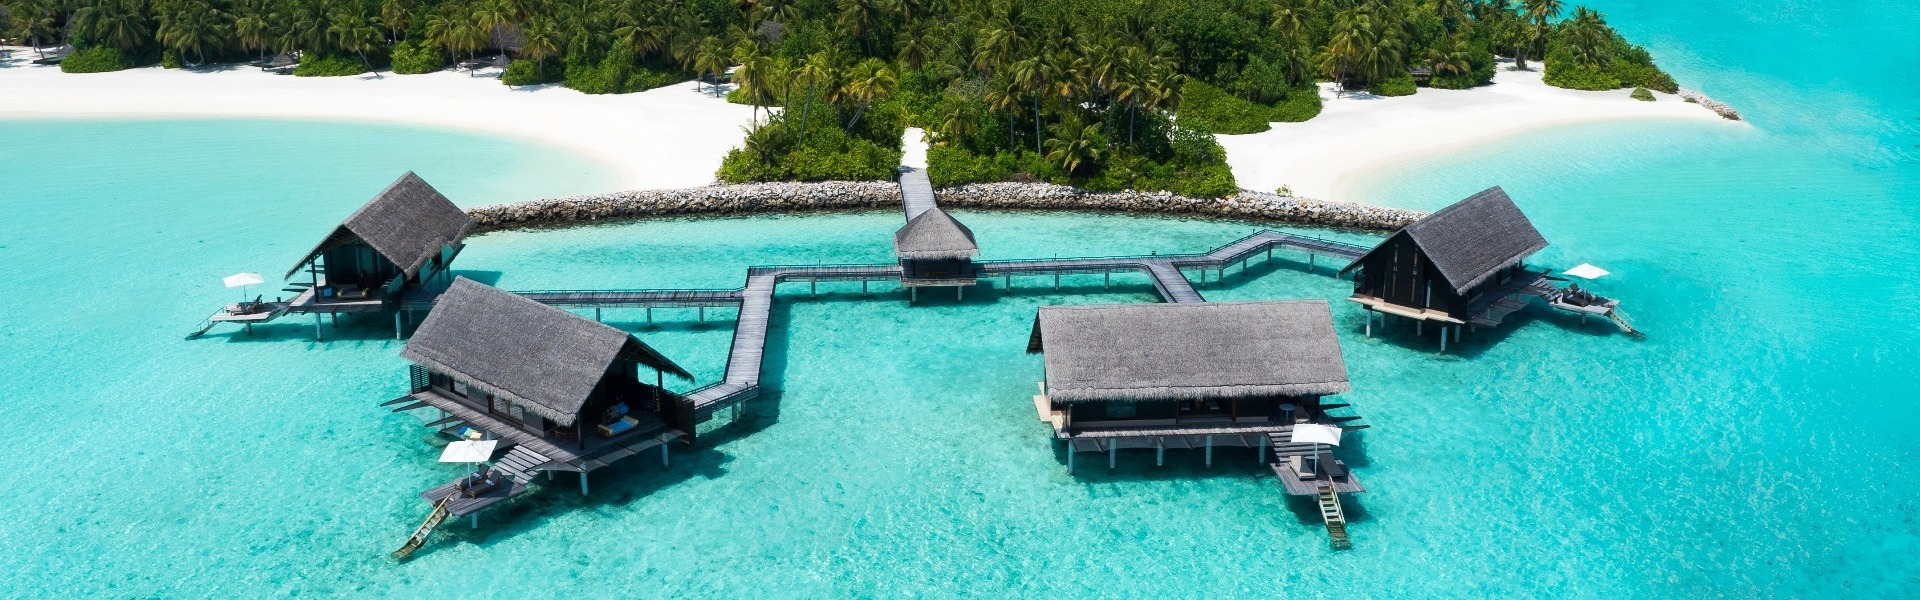 Dhigali Maldives - Luxury Holiday Destination